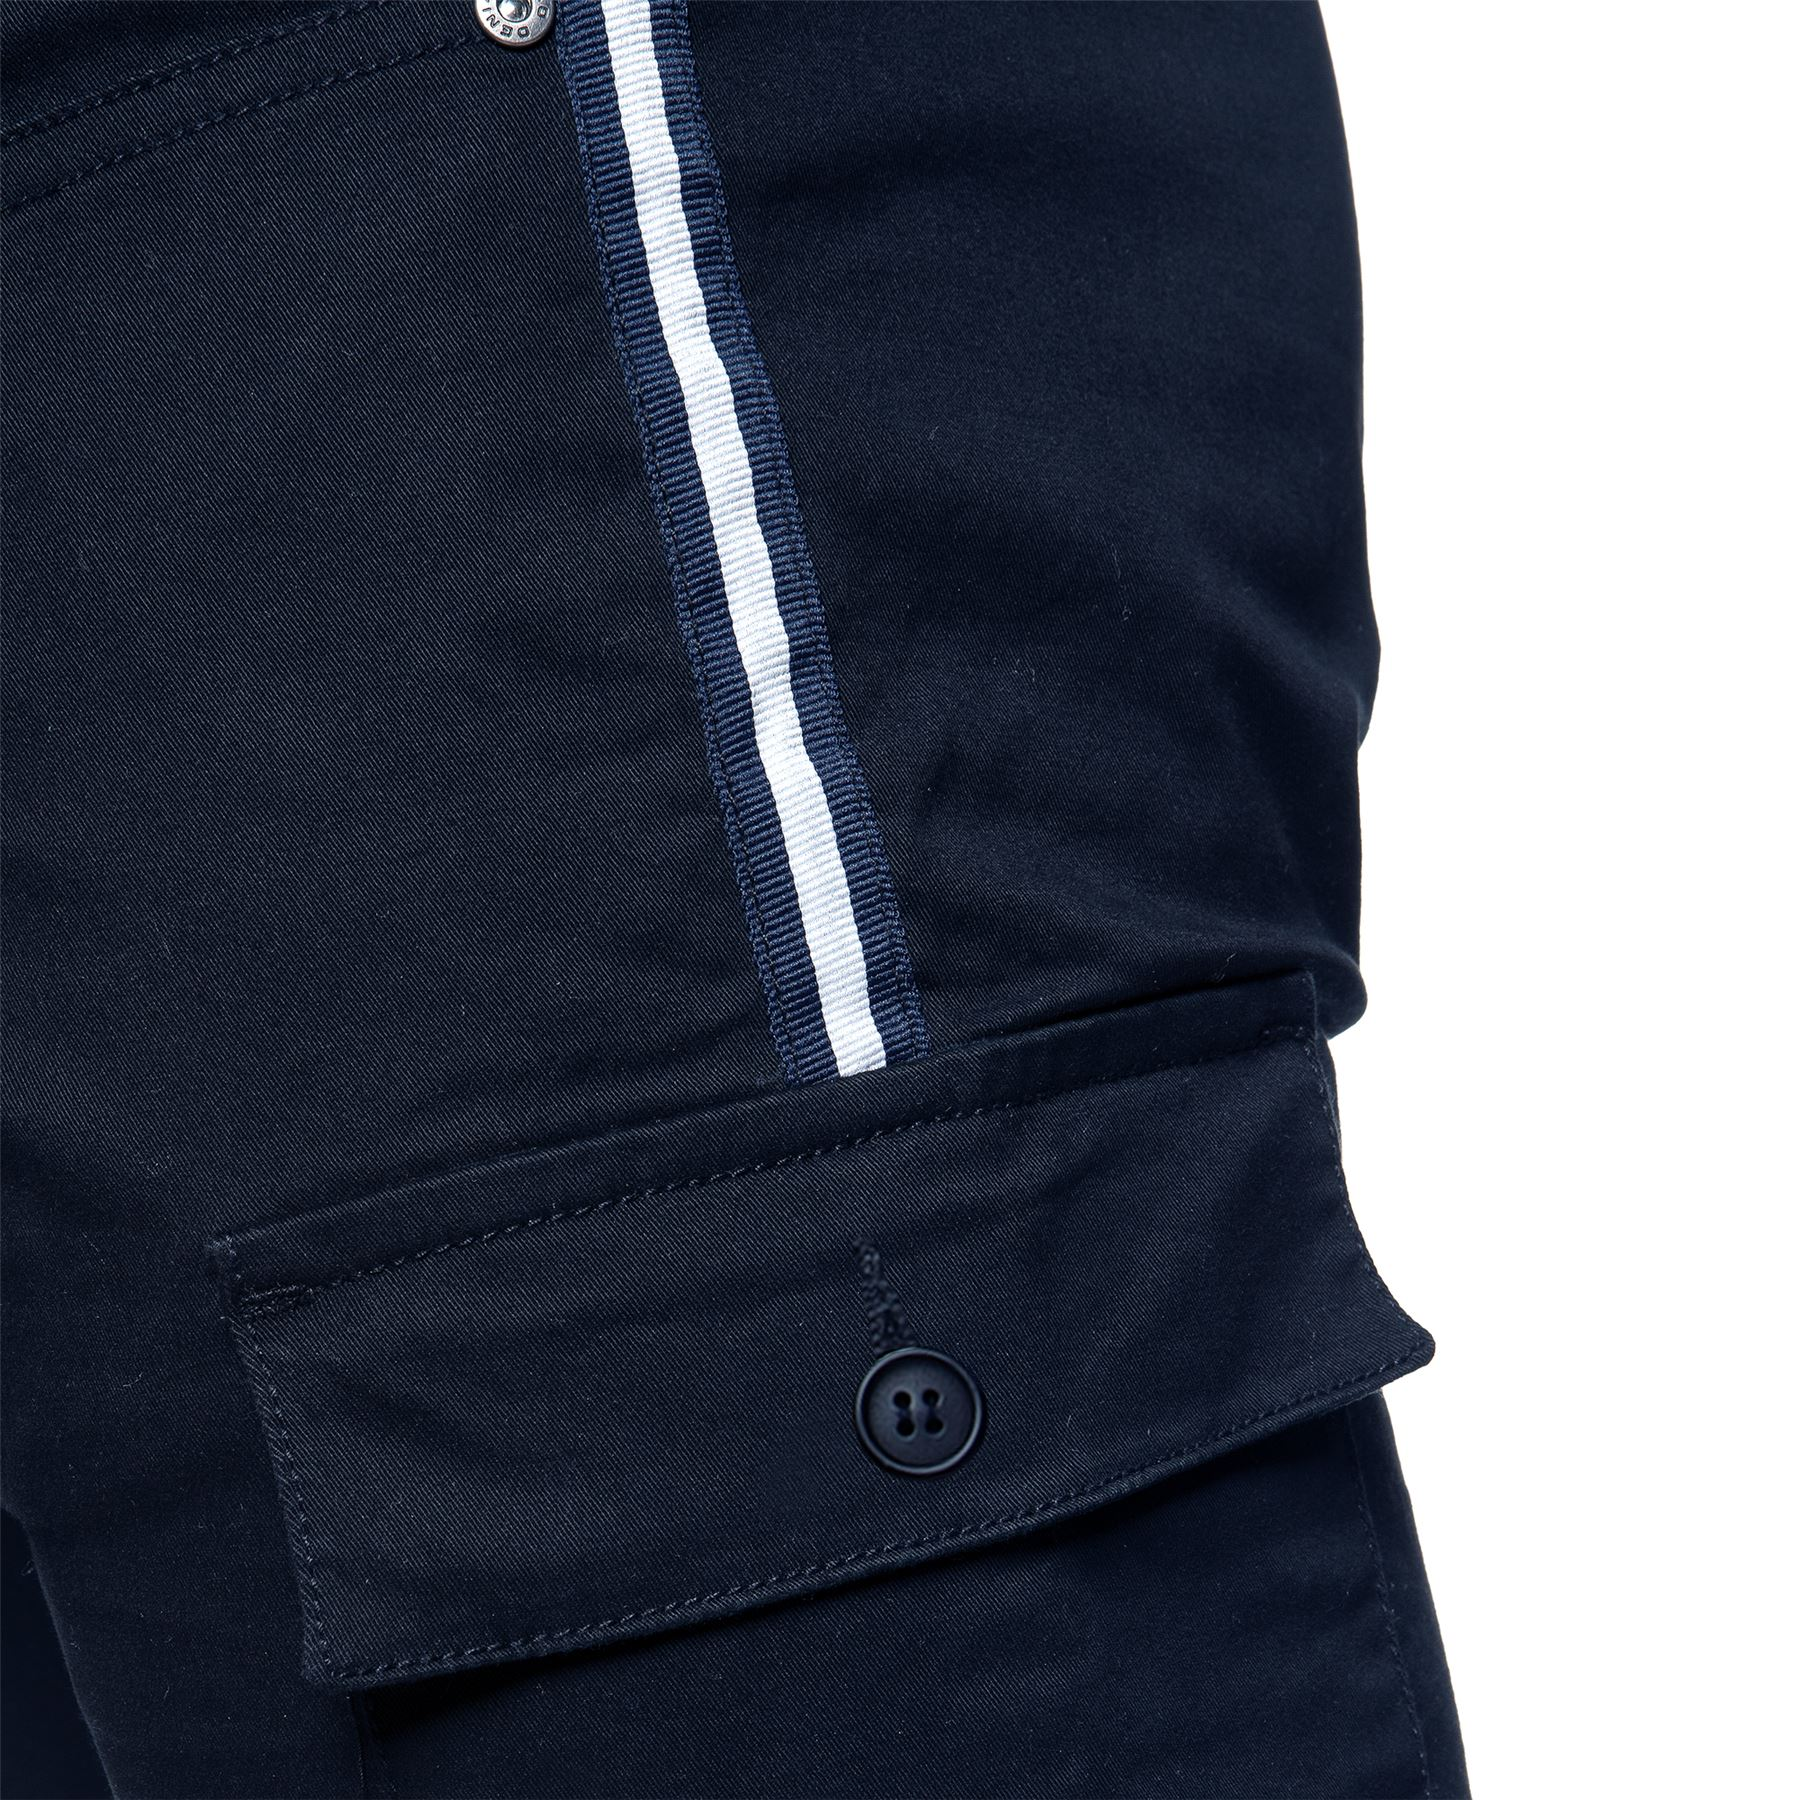 Enzo-Jeans-Mens-Combat-Trousers-Cargo-Chinos-Slim-Stretch-Cuffed-Joggers-Pants thumbnail 12